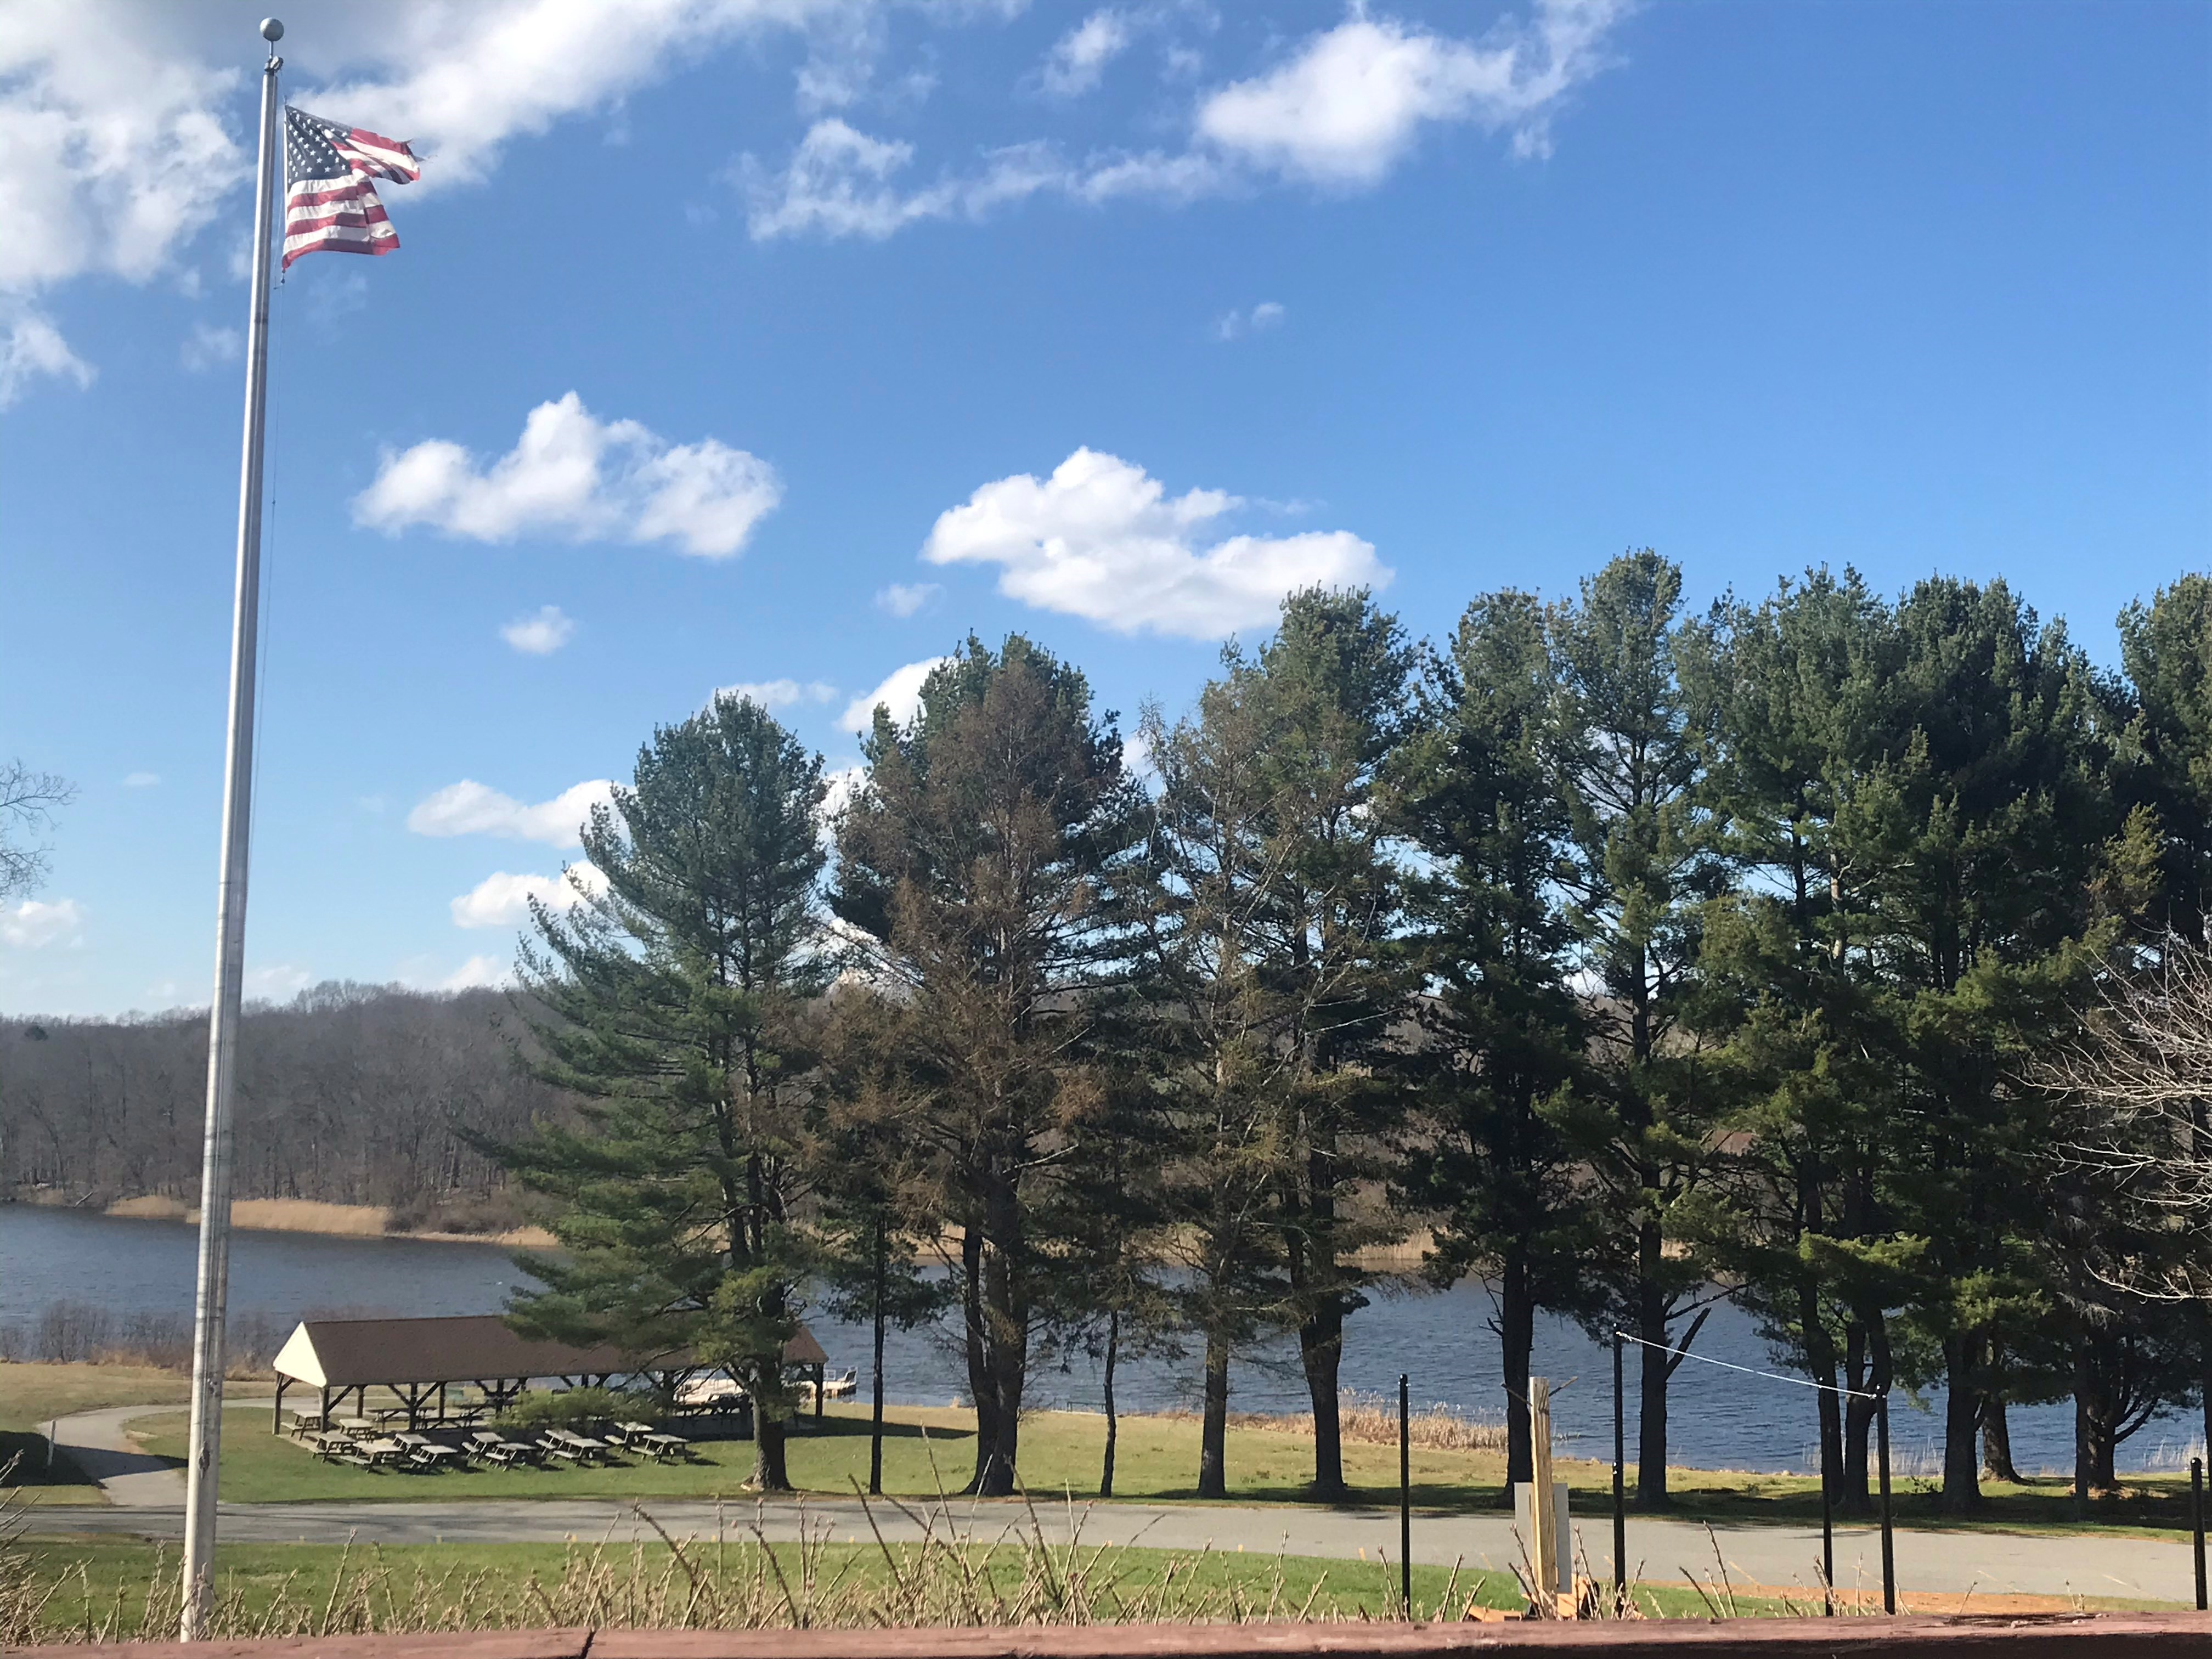 The Salvation Army CONNRI Lodge & Conference Center